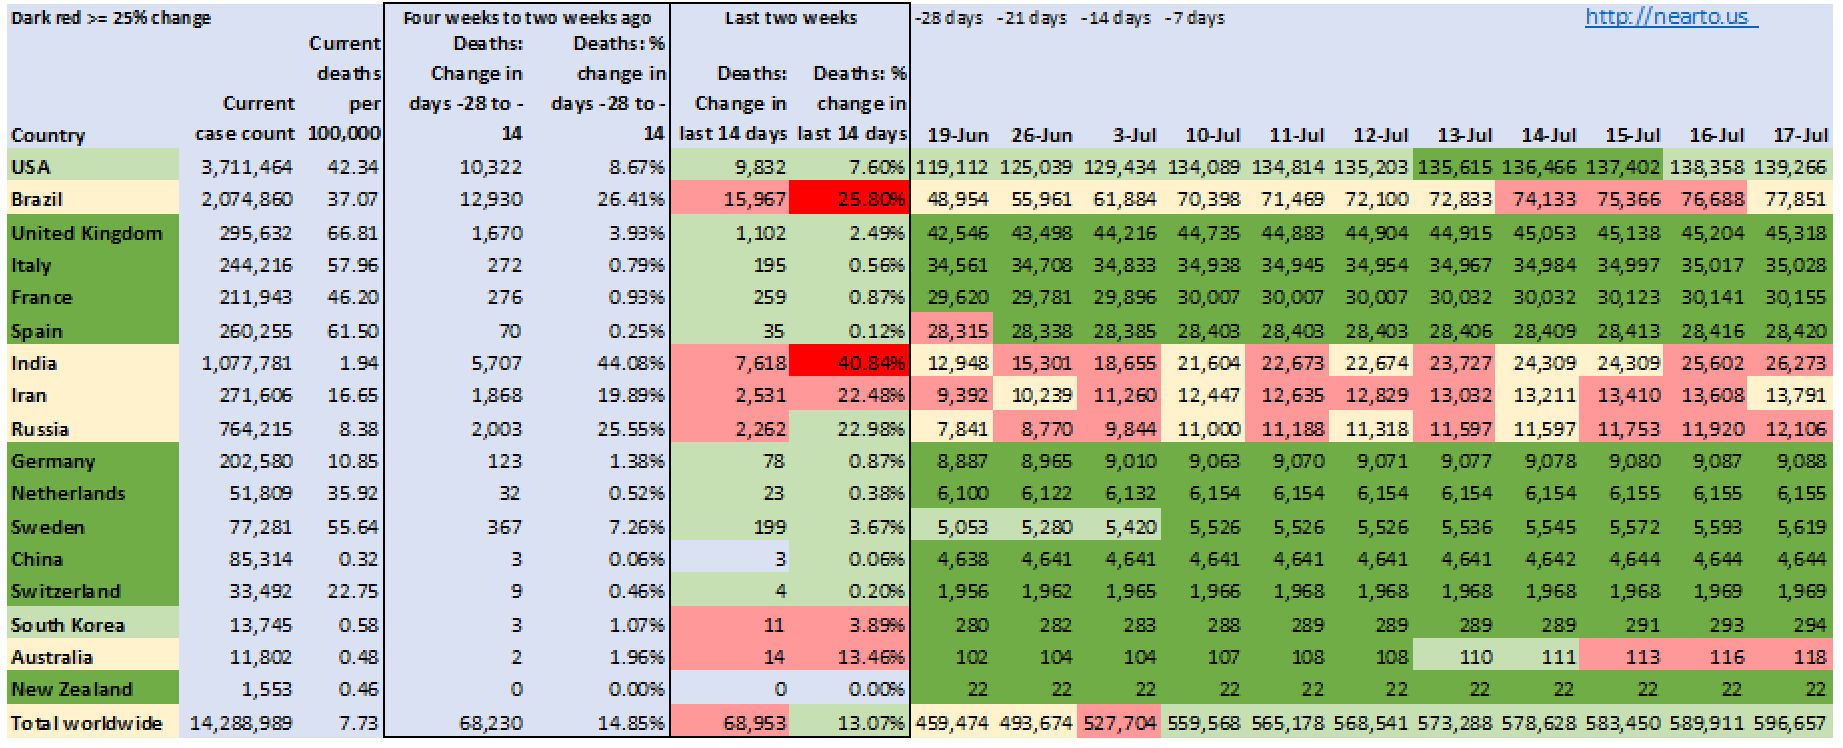 Outcome of death, period Latest assessment (updated each Saturday)